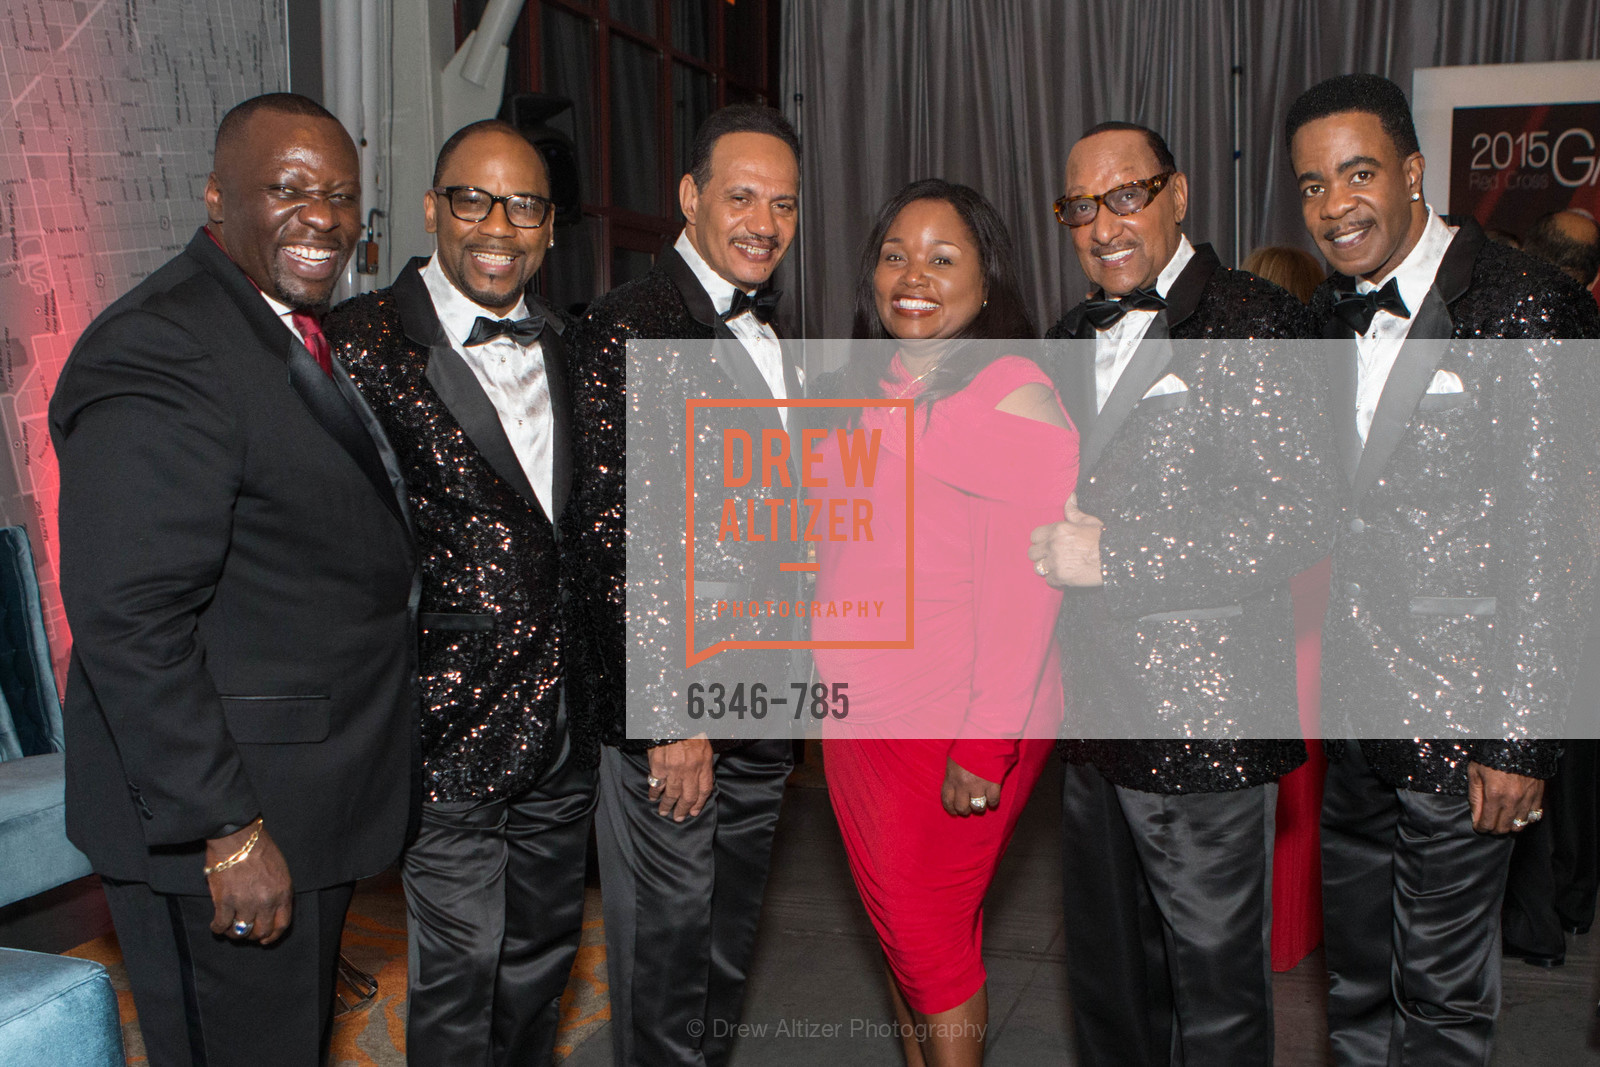 Keith White, Lawrence Payton, Ronnie McNair, Rose White, Duke Fakir, Spike Bonhart, 2015 RED CROSS Gala, US, April 11th, 2015,Drew Altizer, Drew Altizer Photography, full-service agency, private events, San Francisco photographer, photographer california